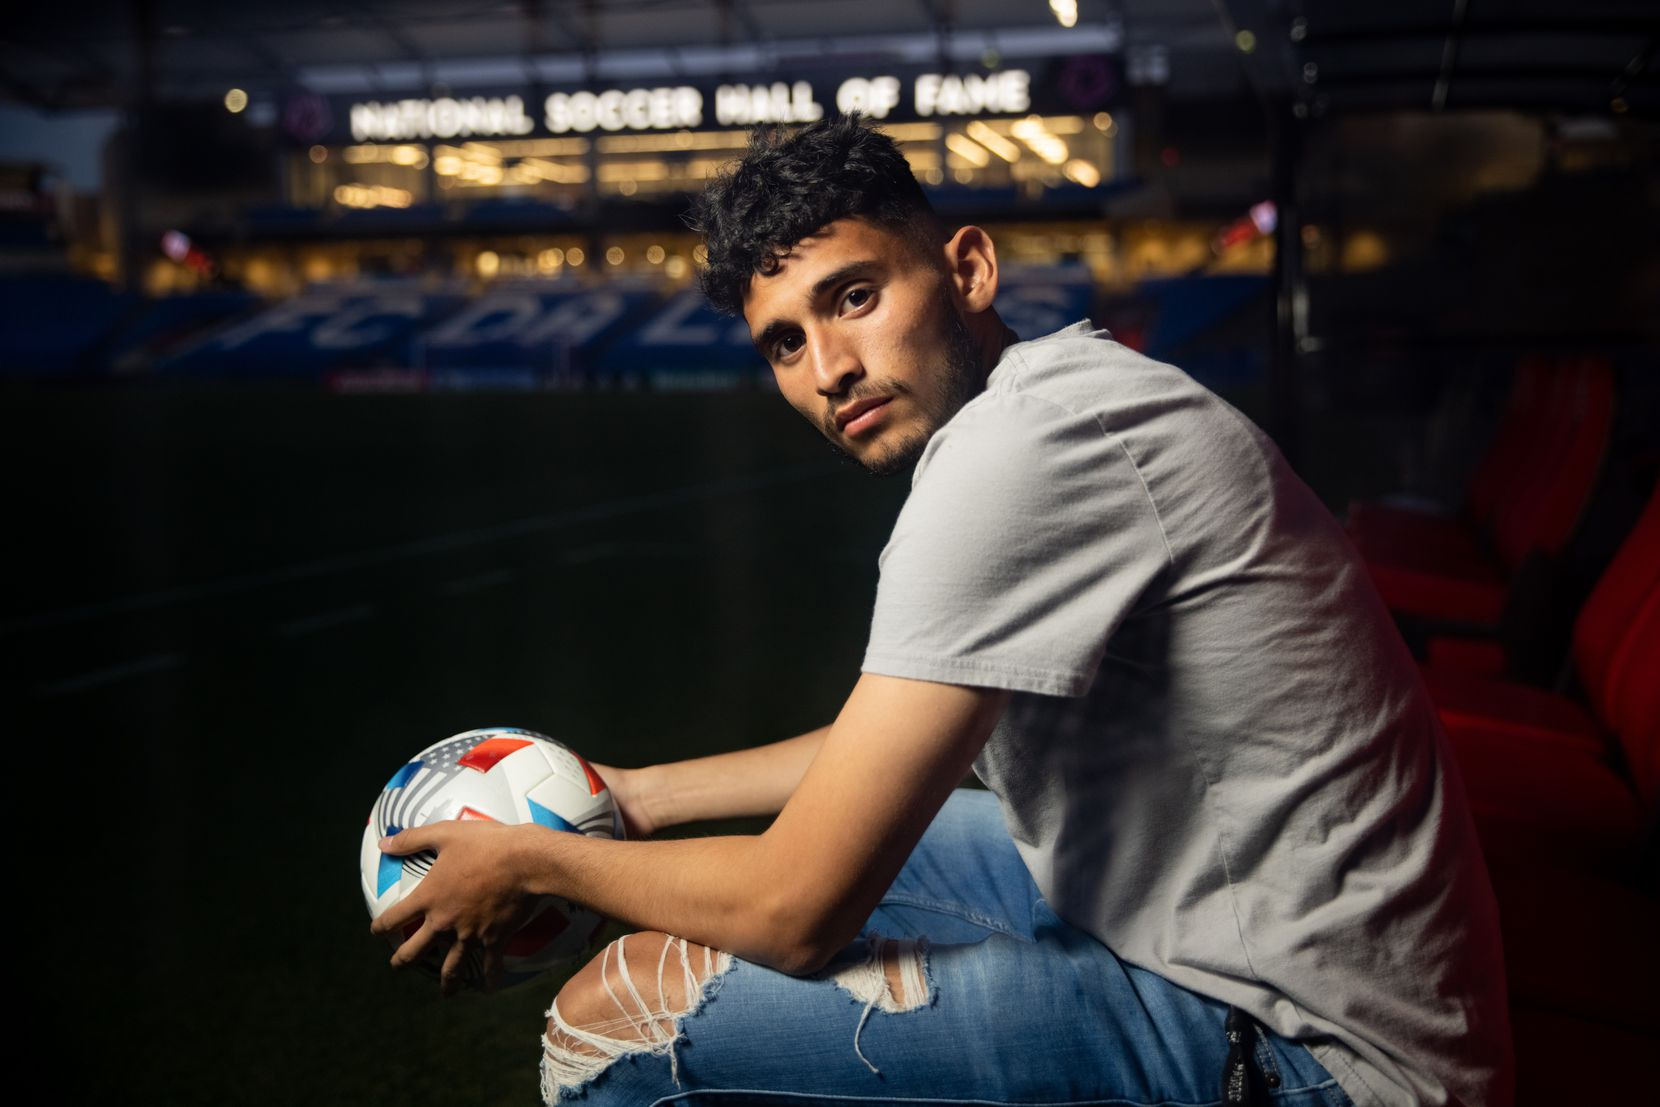 FC Dallas forward Ricardo Pepi poses for a photo at Toyota Stadium in Frisco on Wednesday, Apr. 7, 2021. (Juan Figueroa/ The Dallas Morning News)